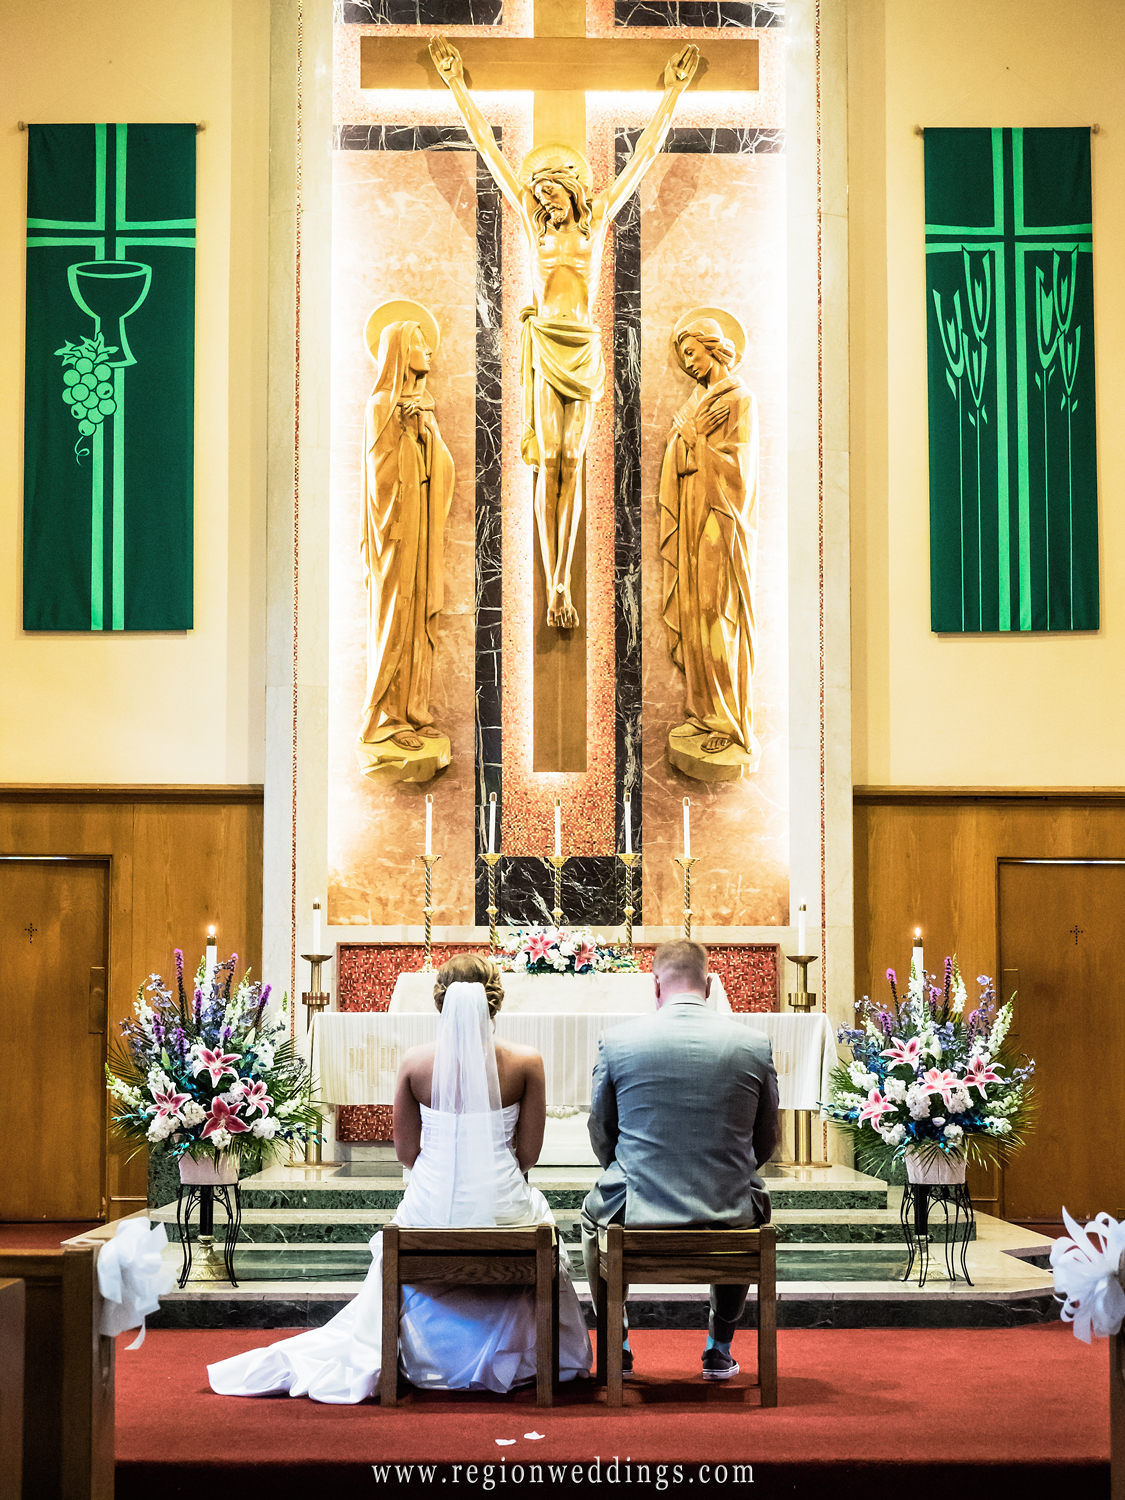 The bride and groom get married at Our Lady of Sorrows Church in Valparaiso, IN.